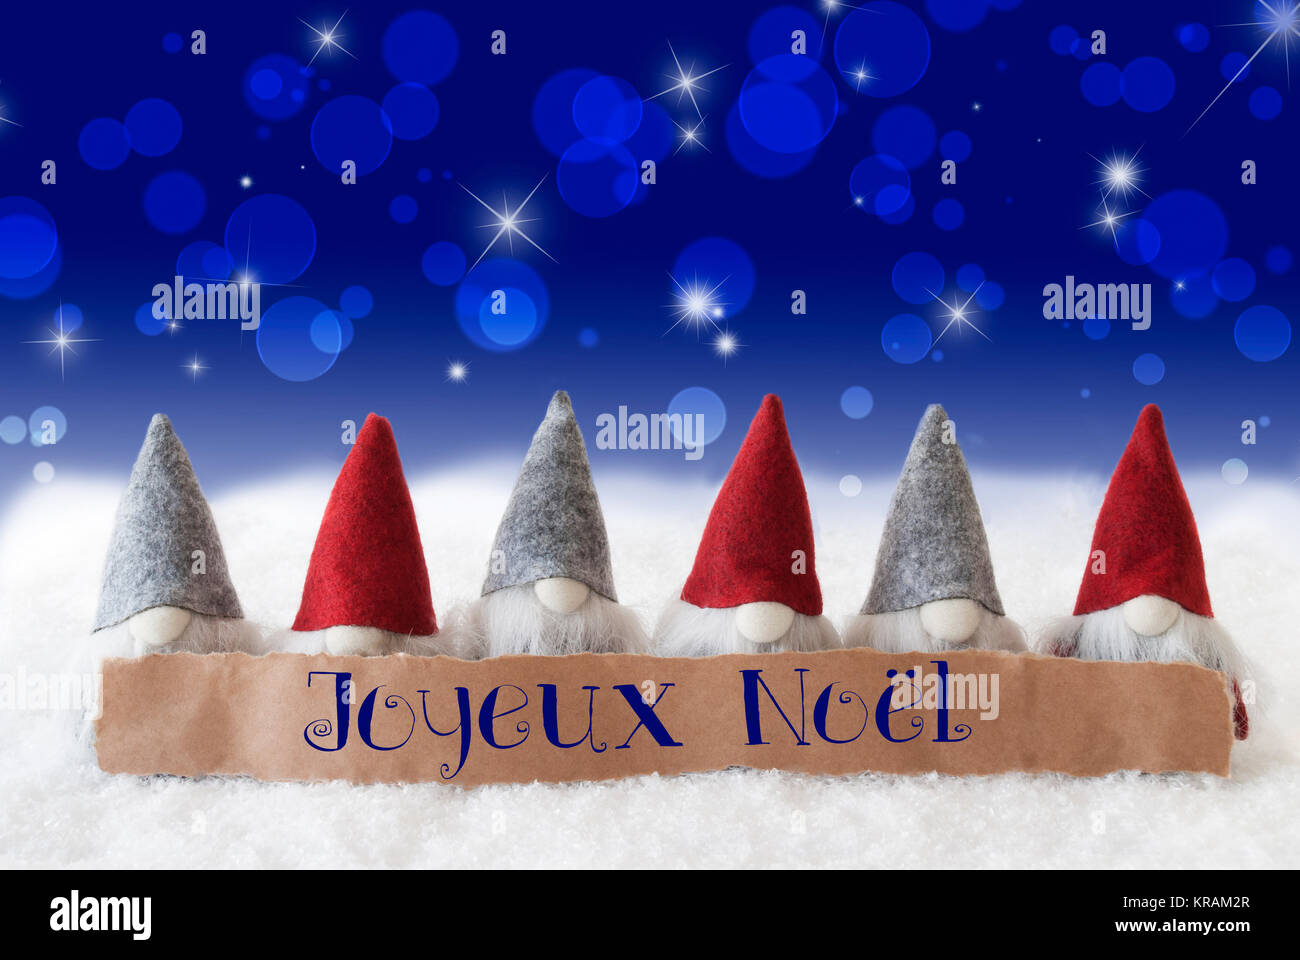 Label with french text joyeux noel means merry christmas christmas label with french text joyeux noel means merry christmas christmas greeting card with gnomes sparkling bokeh and blue background with snow and stars m4hsunfo